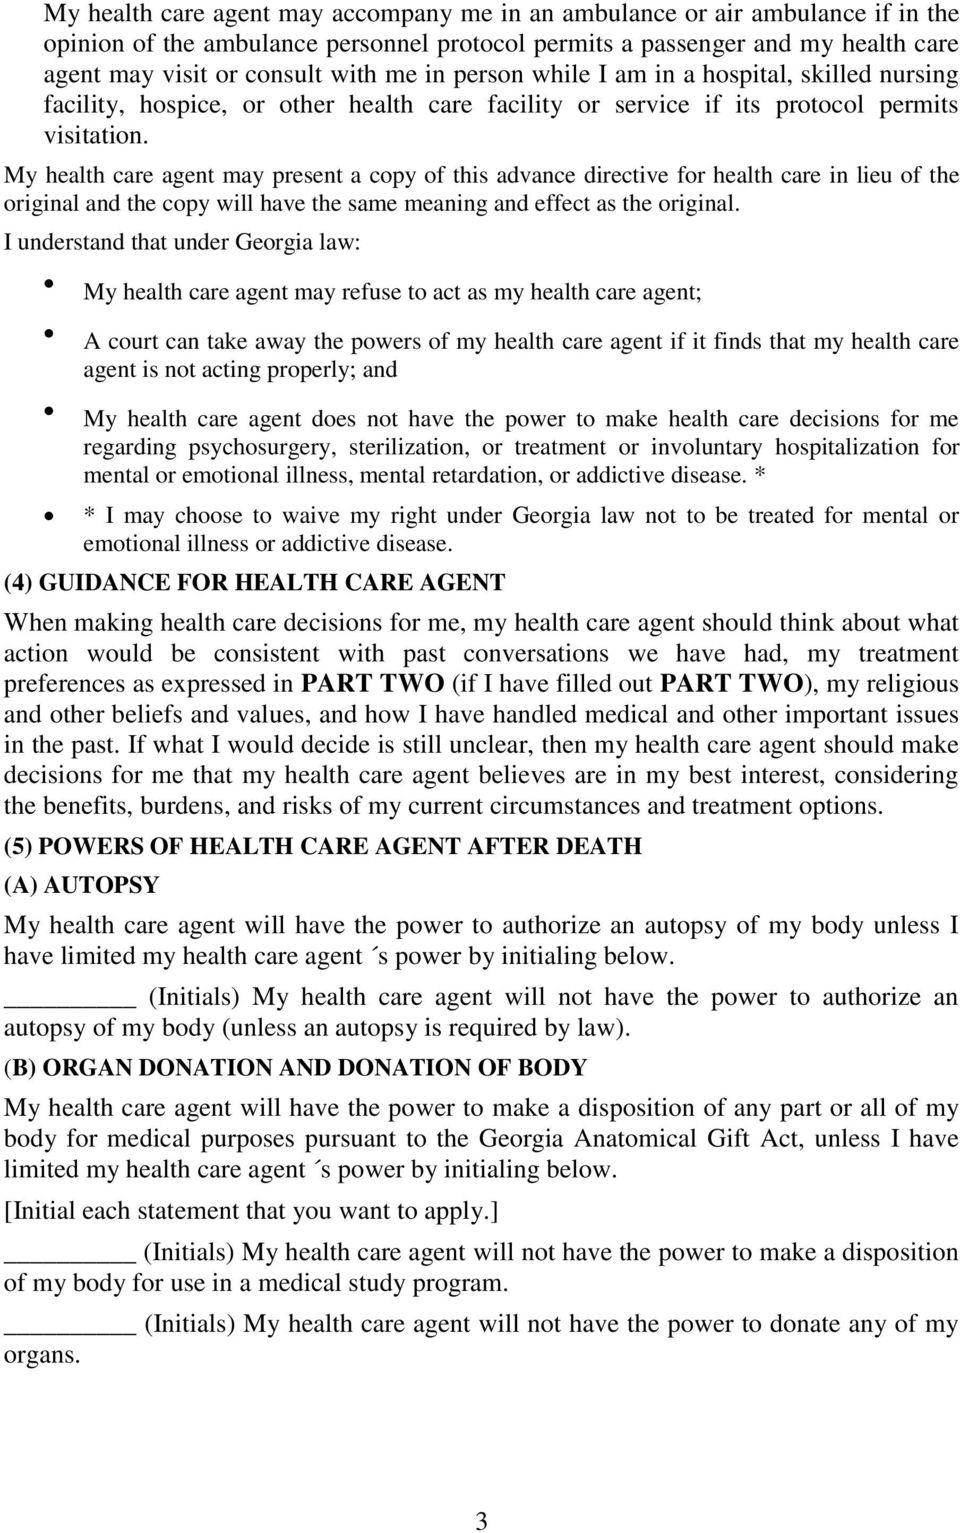 My health care agent may present a copy of this advance directive for health care in lieu of the original and the copy will have the same meaning and effect as the original.